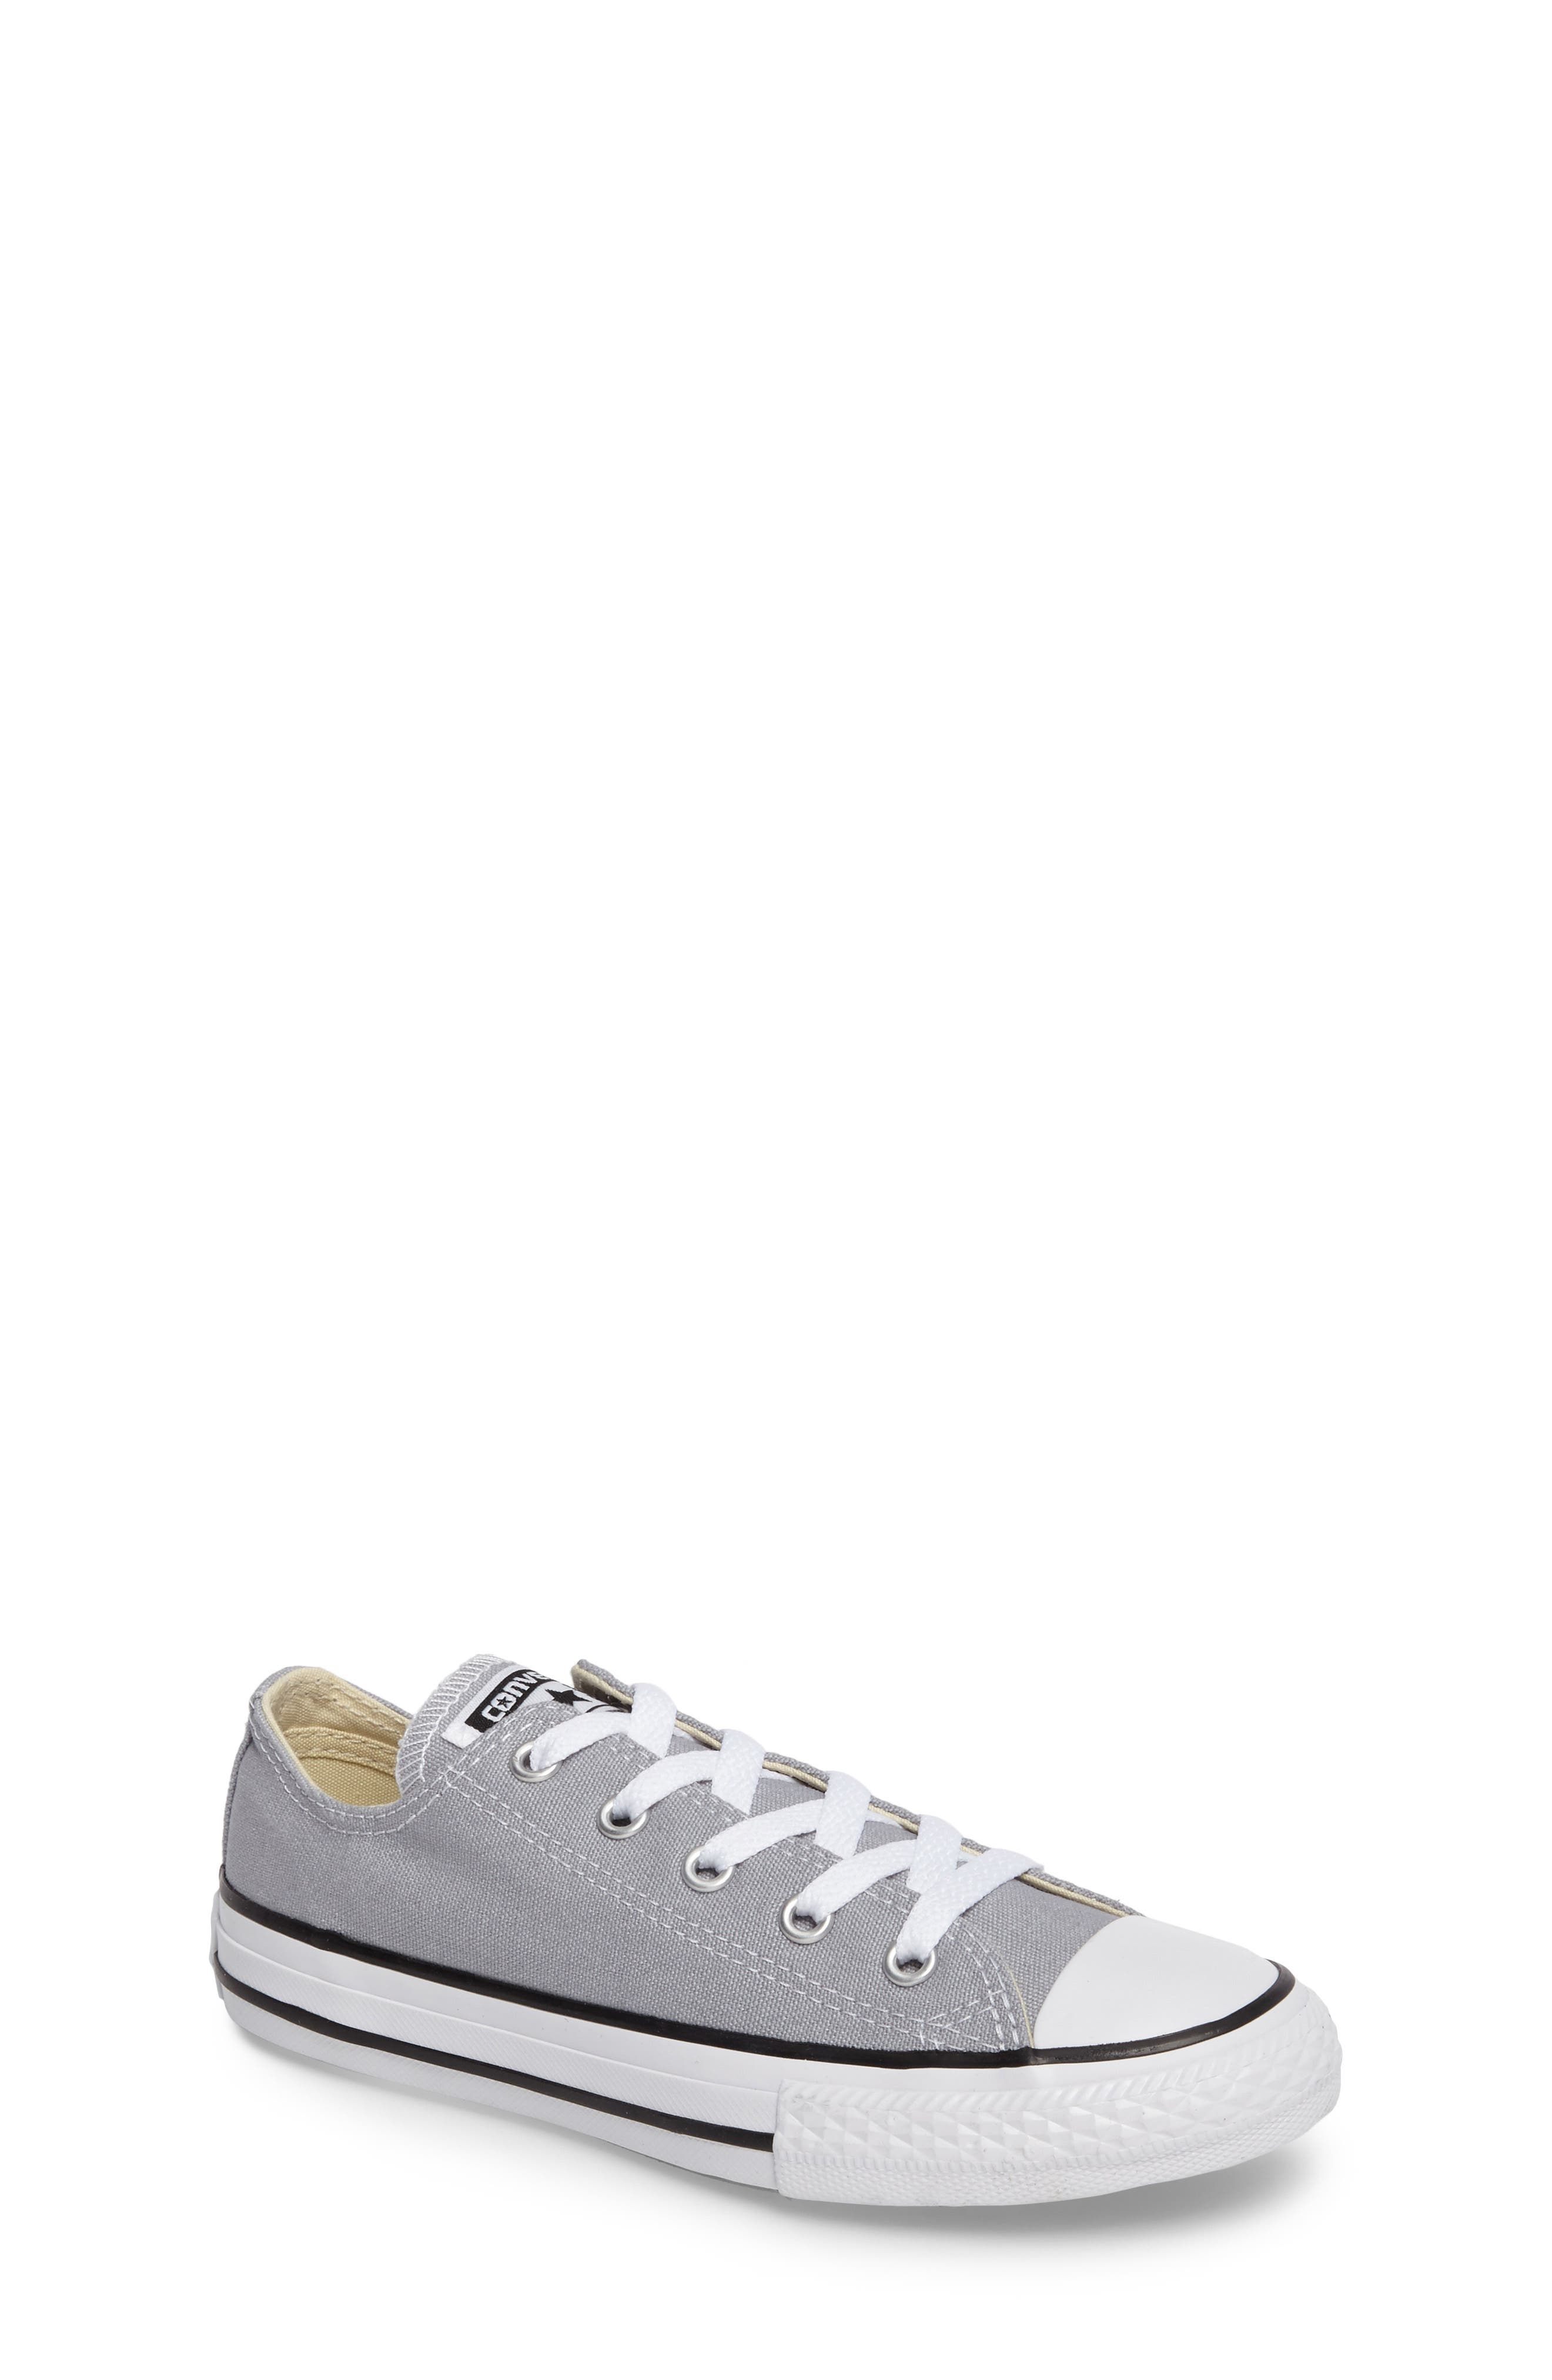 Chuck Taylor<sup>®</sup> All Star<sup>®</sup> 'Ox' Low Top Sneaker,                             Main thumbnail 1, color,                             097